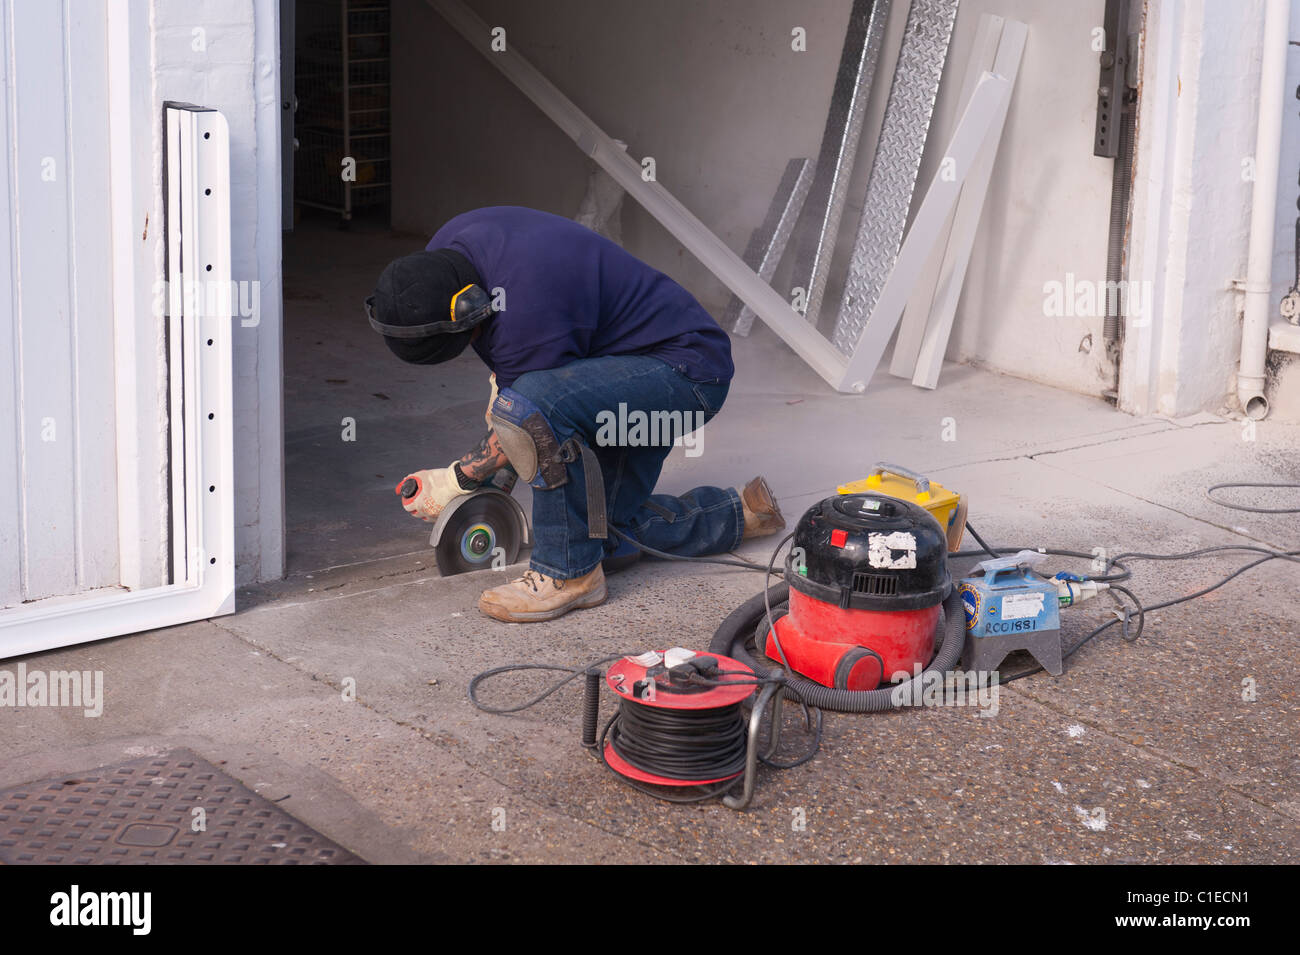 A builder using an angle grinder to cut through a concrete floor in the Uk - Stock Image